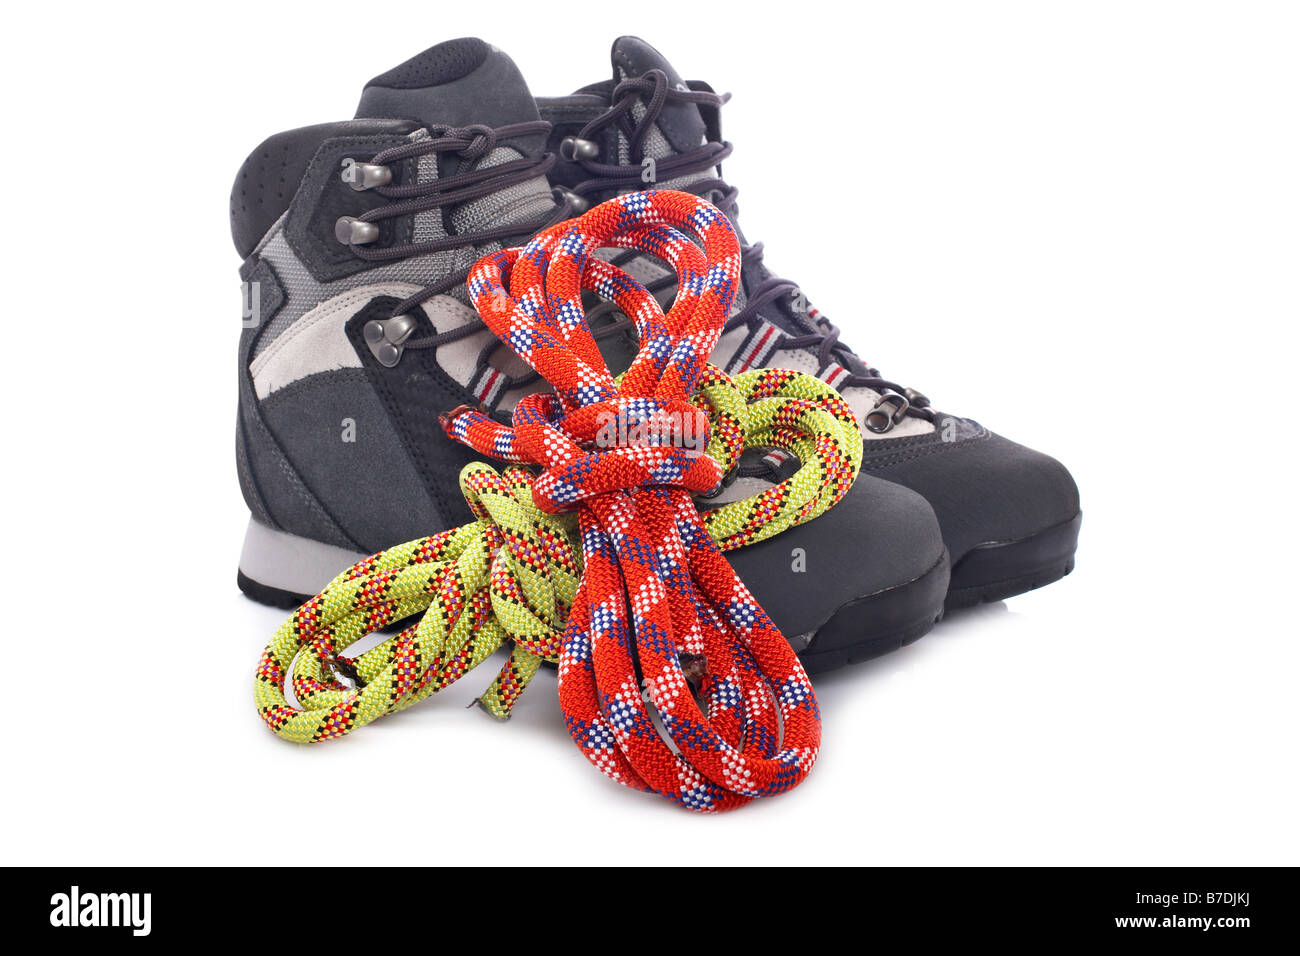 Hiking boots and two rope reflected on white background - Stock Image